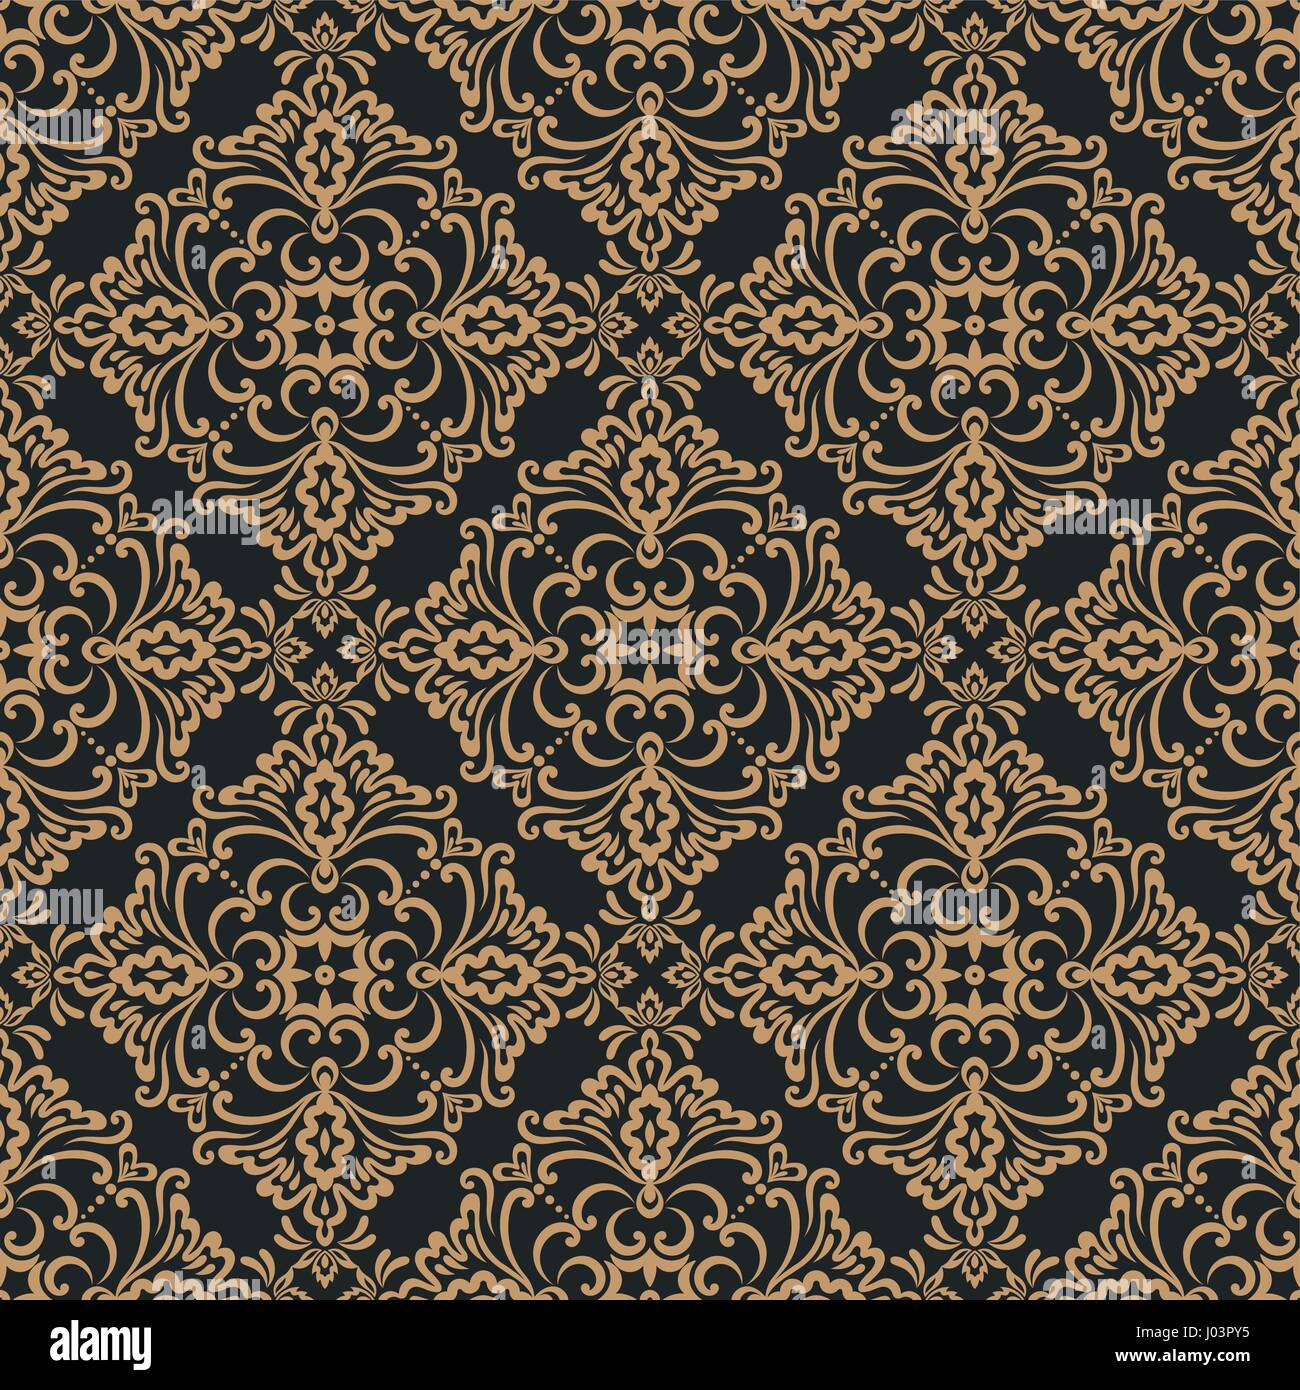 Luxury Elegant Texture Of Baroque Style Pattern Can Be Used As A Background Wallpaper Wrapper Page Fill Element Ornat